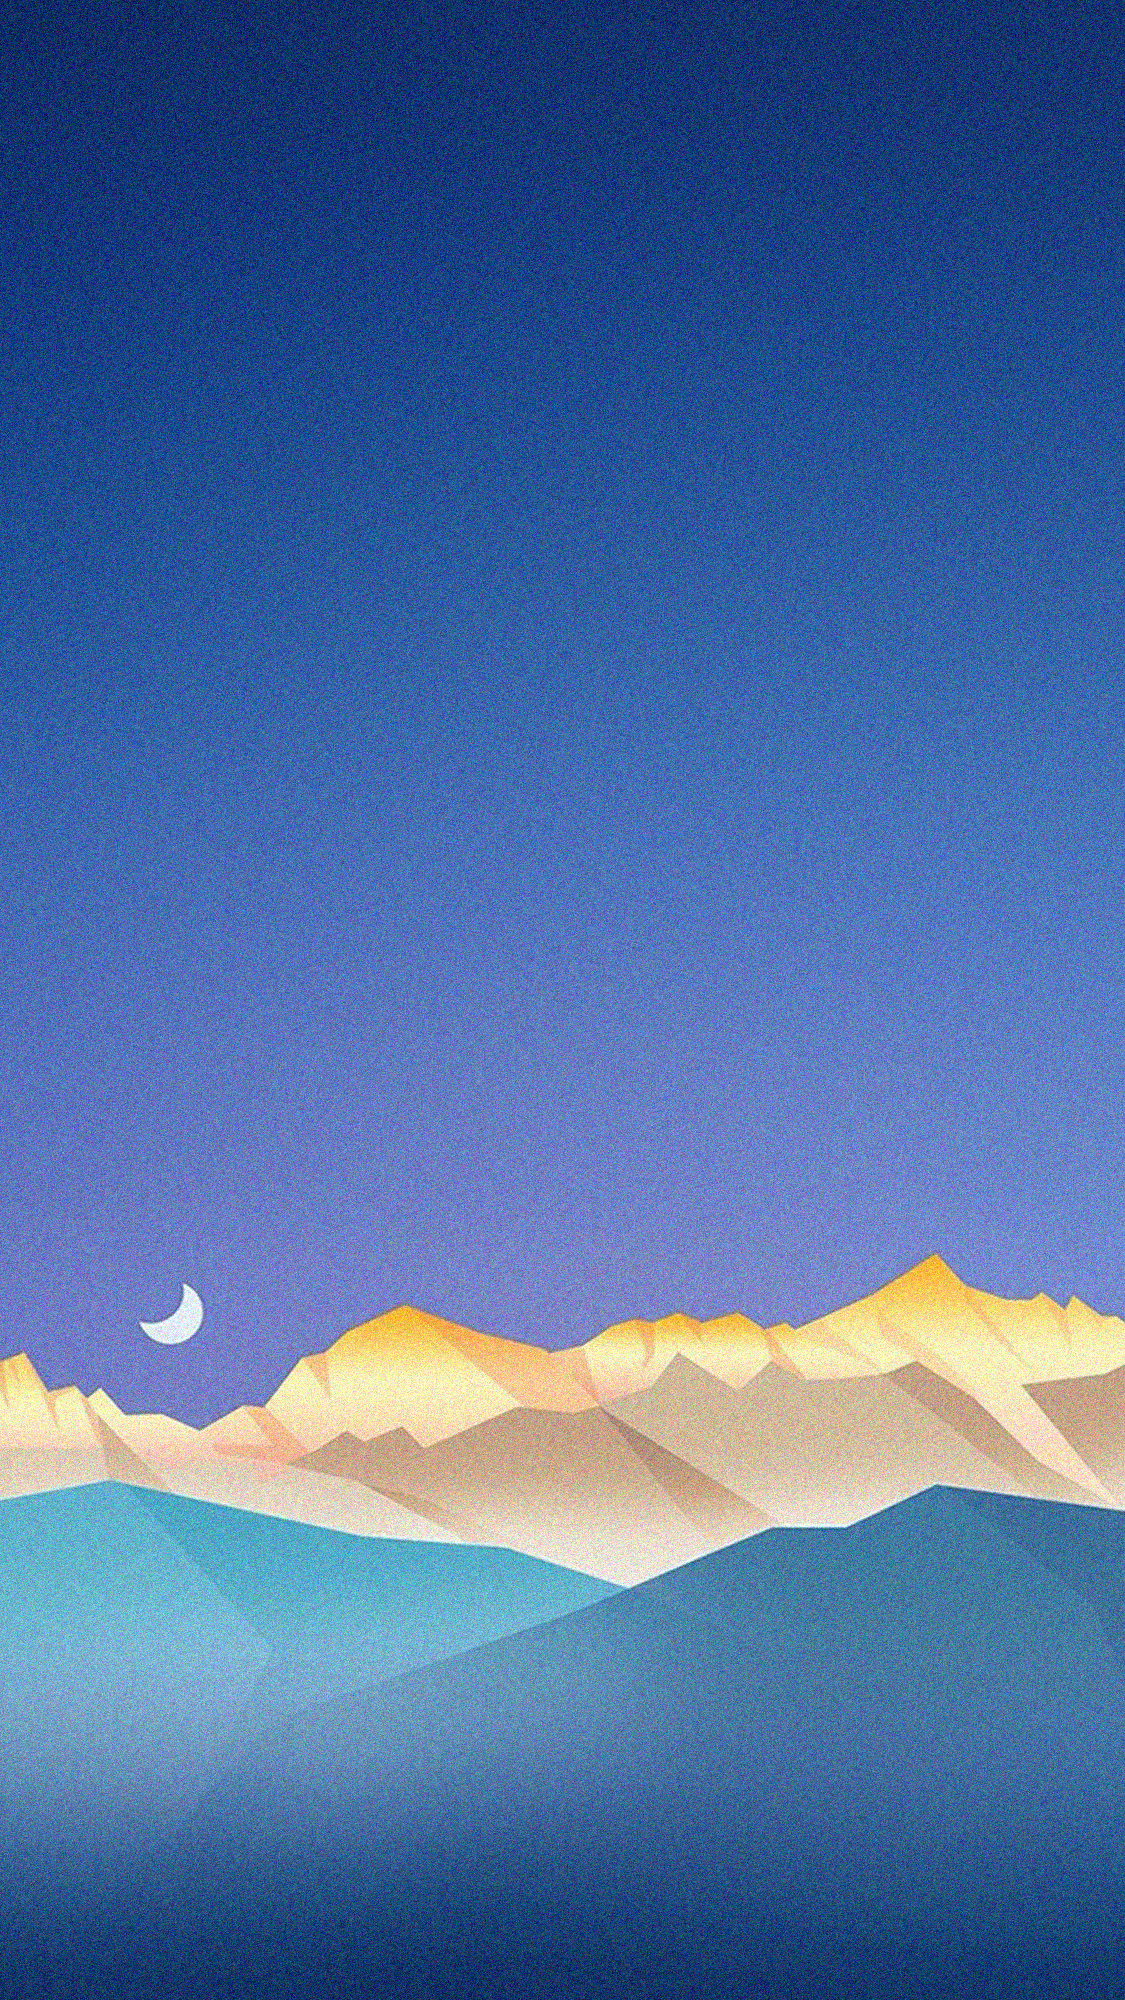 Sky over mountains anime wallpaper